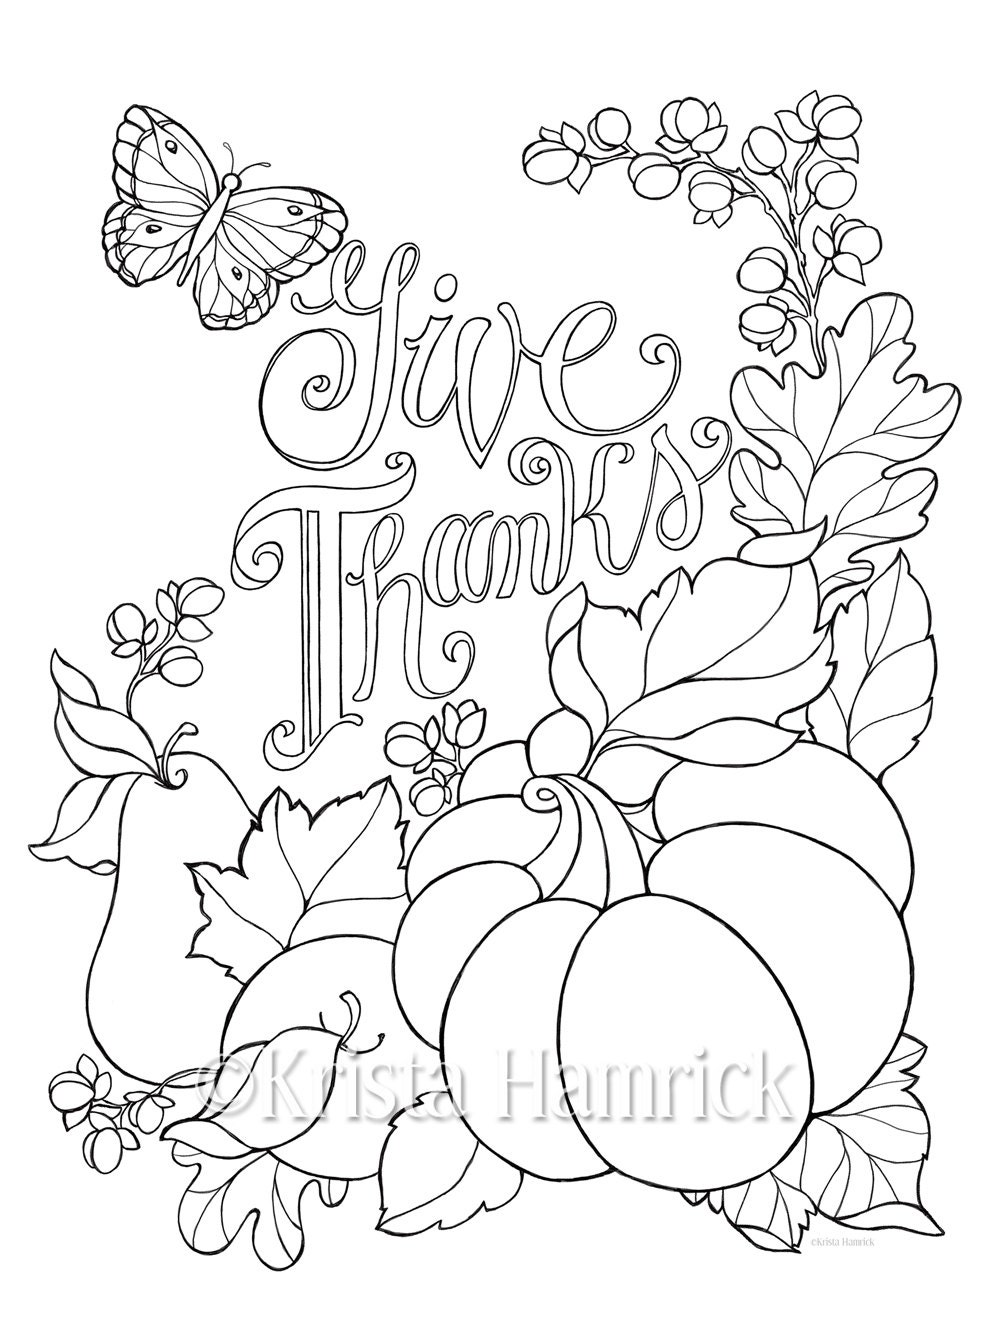 Coloring pages about gving ~ Give Thanks coloring page in two sizes: 8.5X11 and Bible